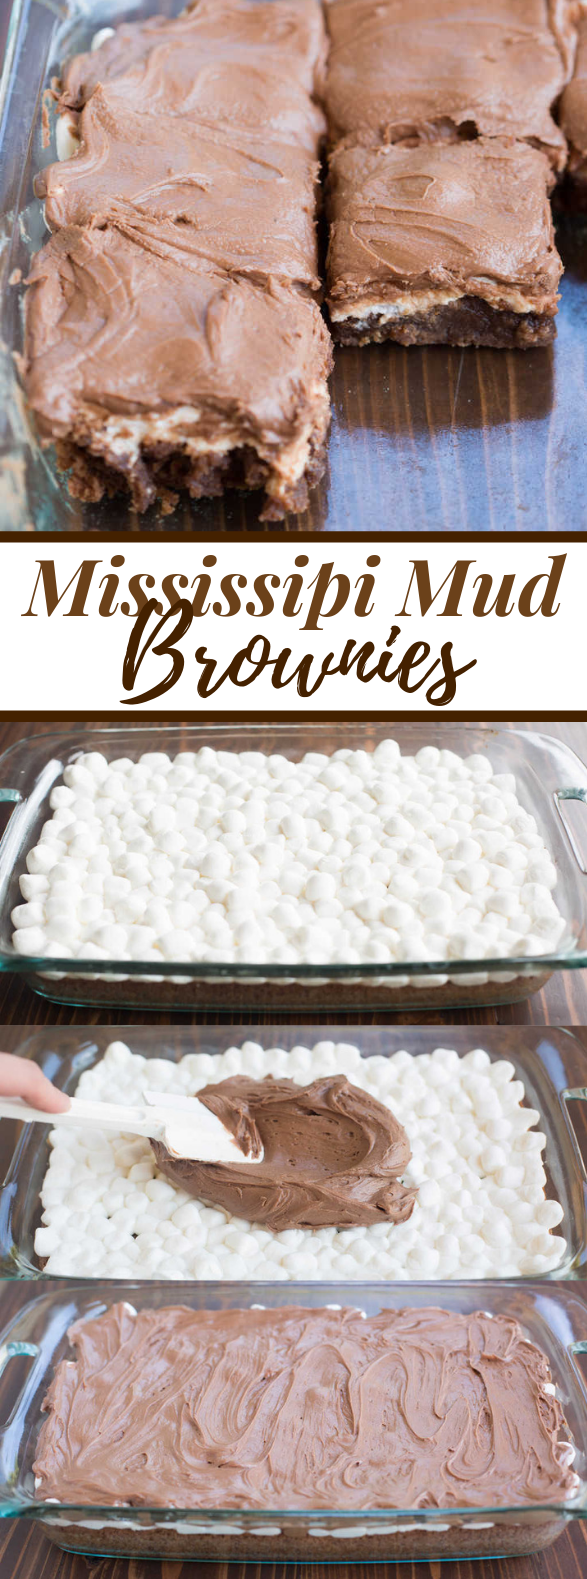 MISSISSIPPI MUD BROWNIES #bars #chocolate